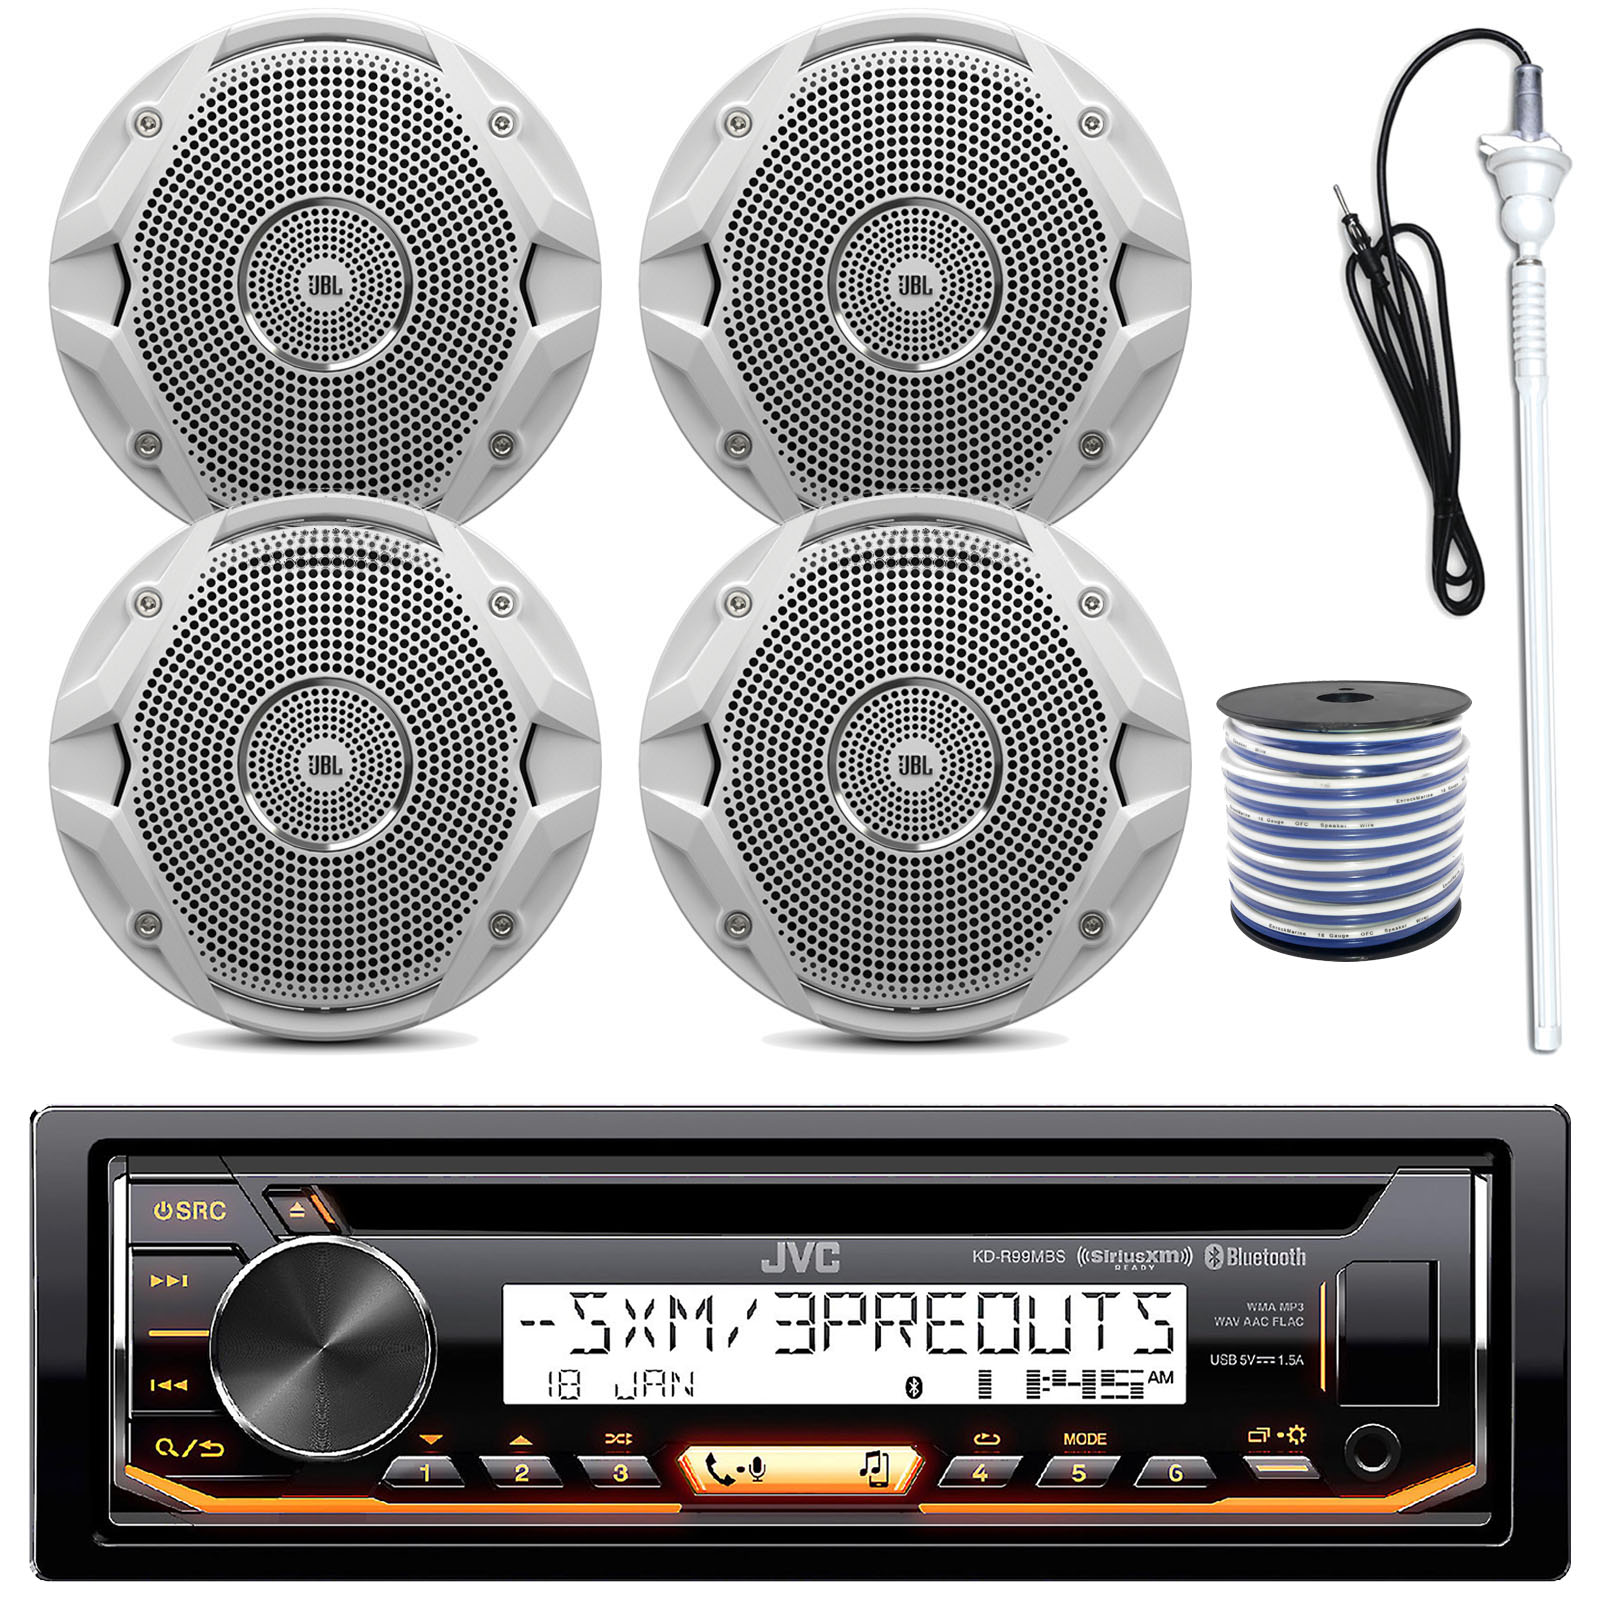 """JVC KD-R99MBS MP3/USB/AUX Bluetooth Marine Boat Yacht Stereo Receiver CD Player Bundle Combo With 4 (2 Pairs) JBL MS6510 150 Watt 6.5"""" Dual Cone White Marine Speaker + 18g 50FT Speaker Wire"""